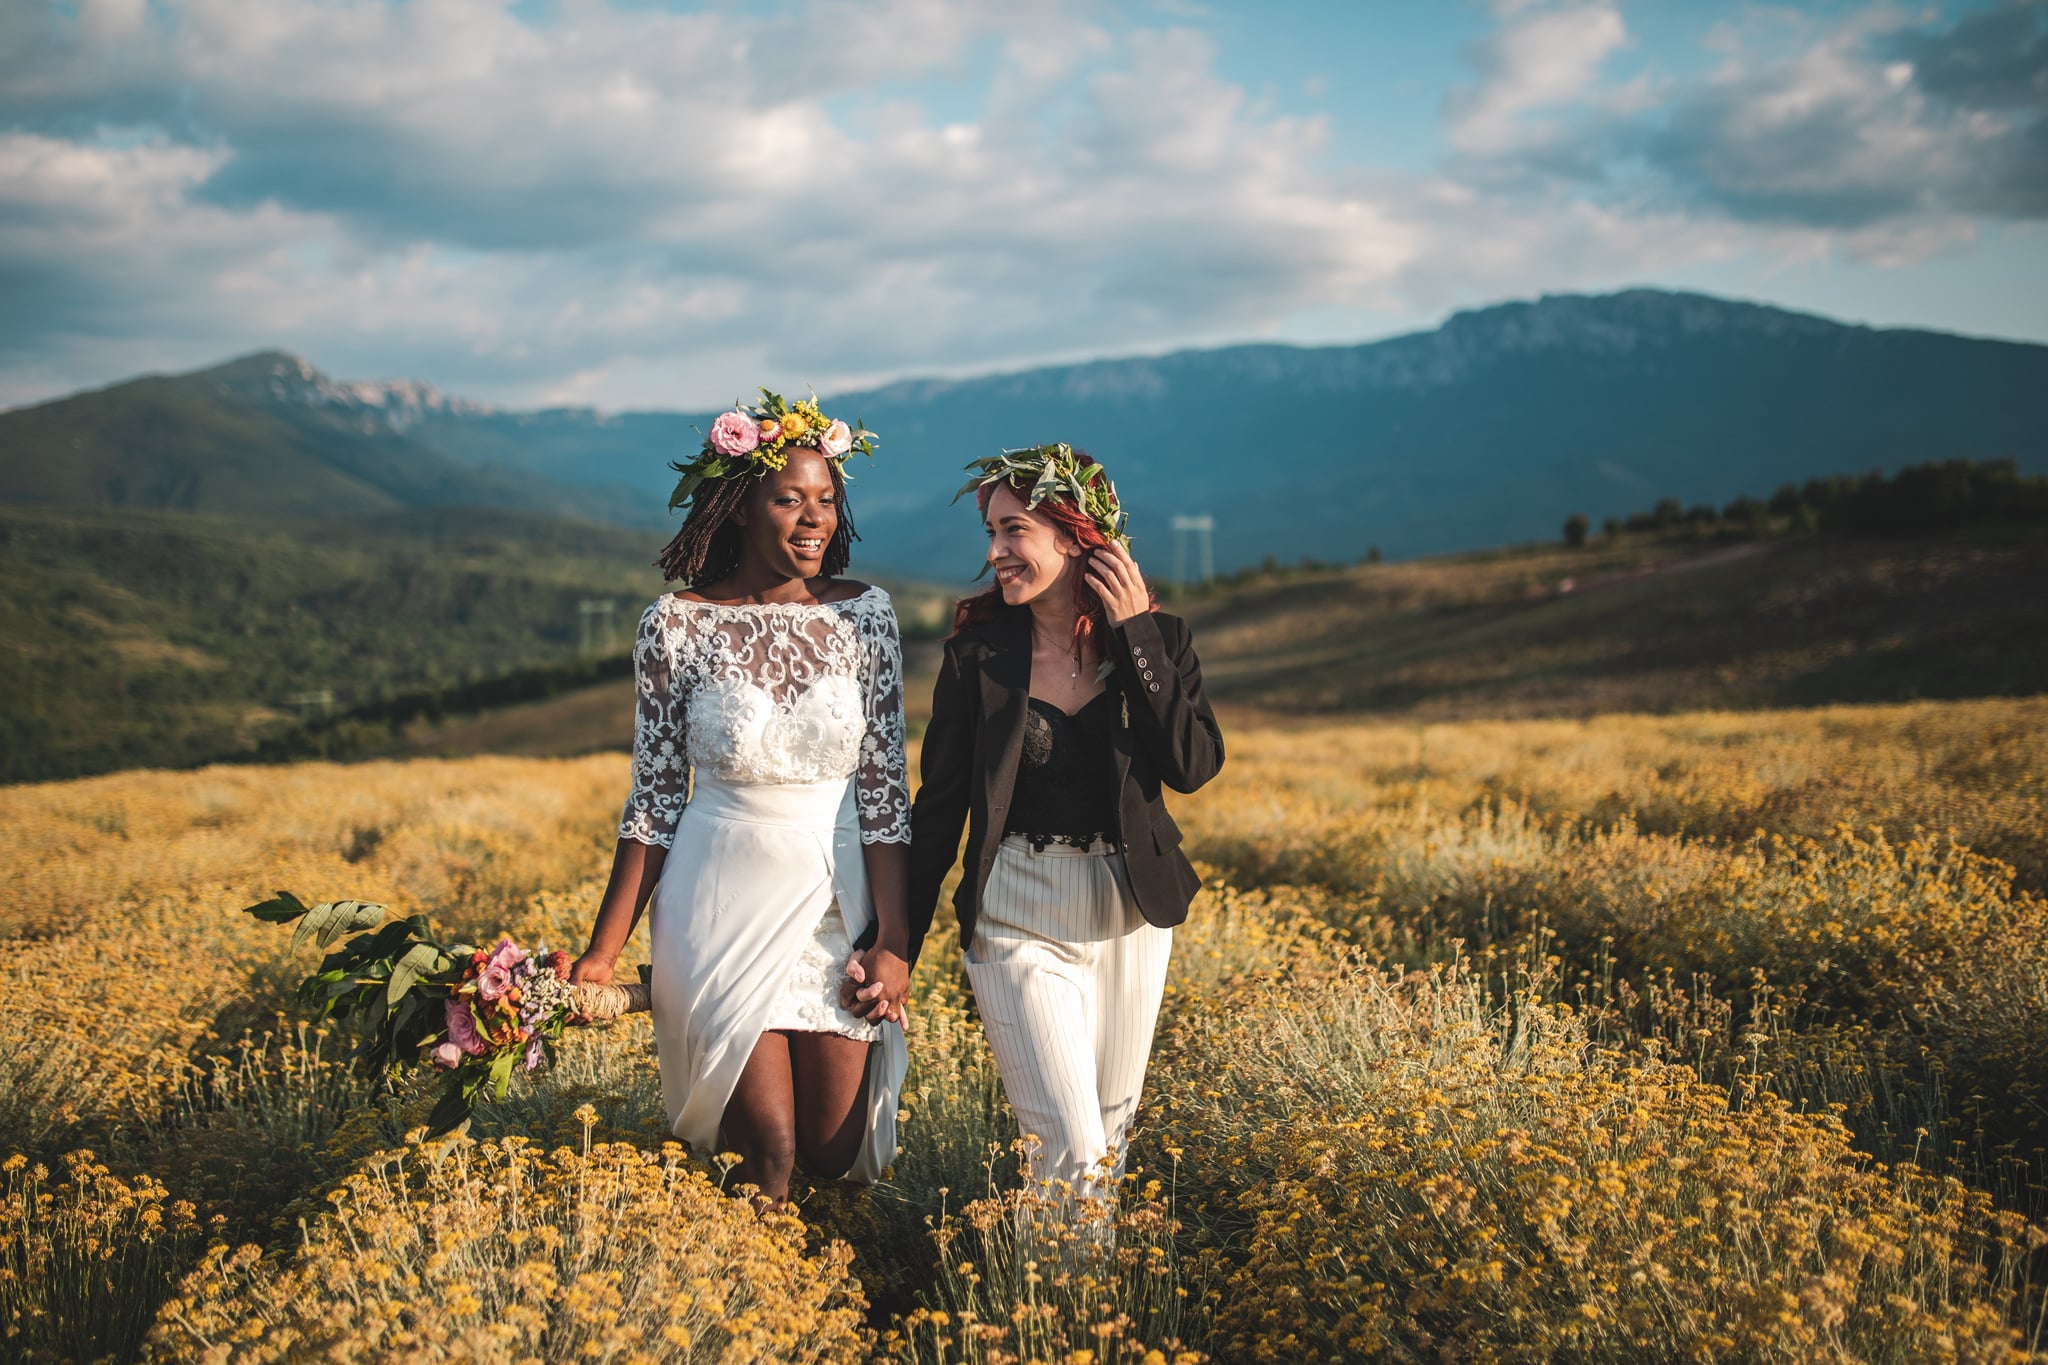 Two beautiful, young women holding hands and walking on meadow on their wedding day